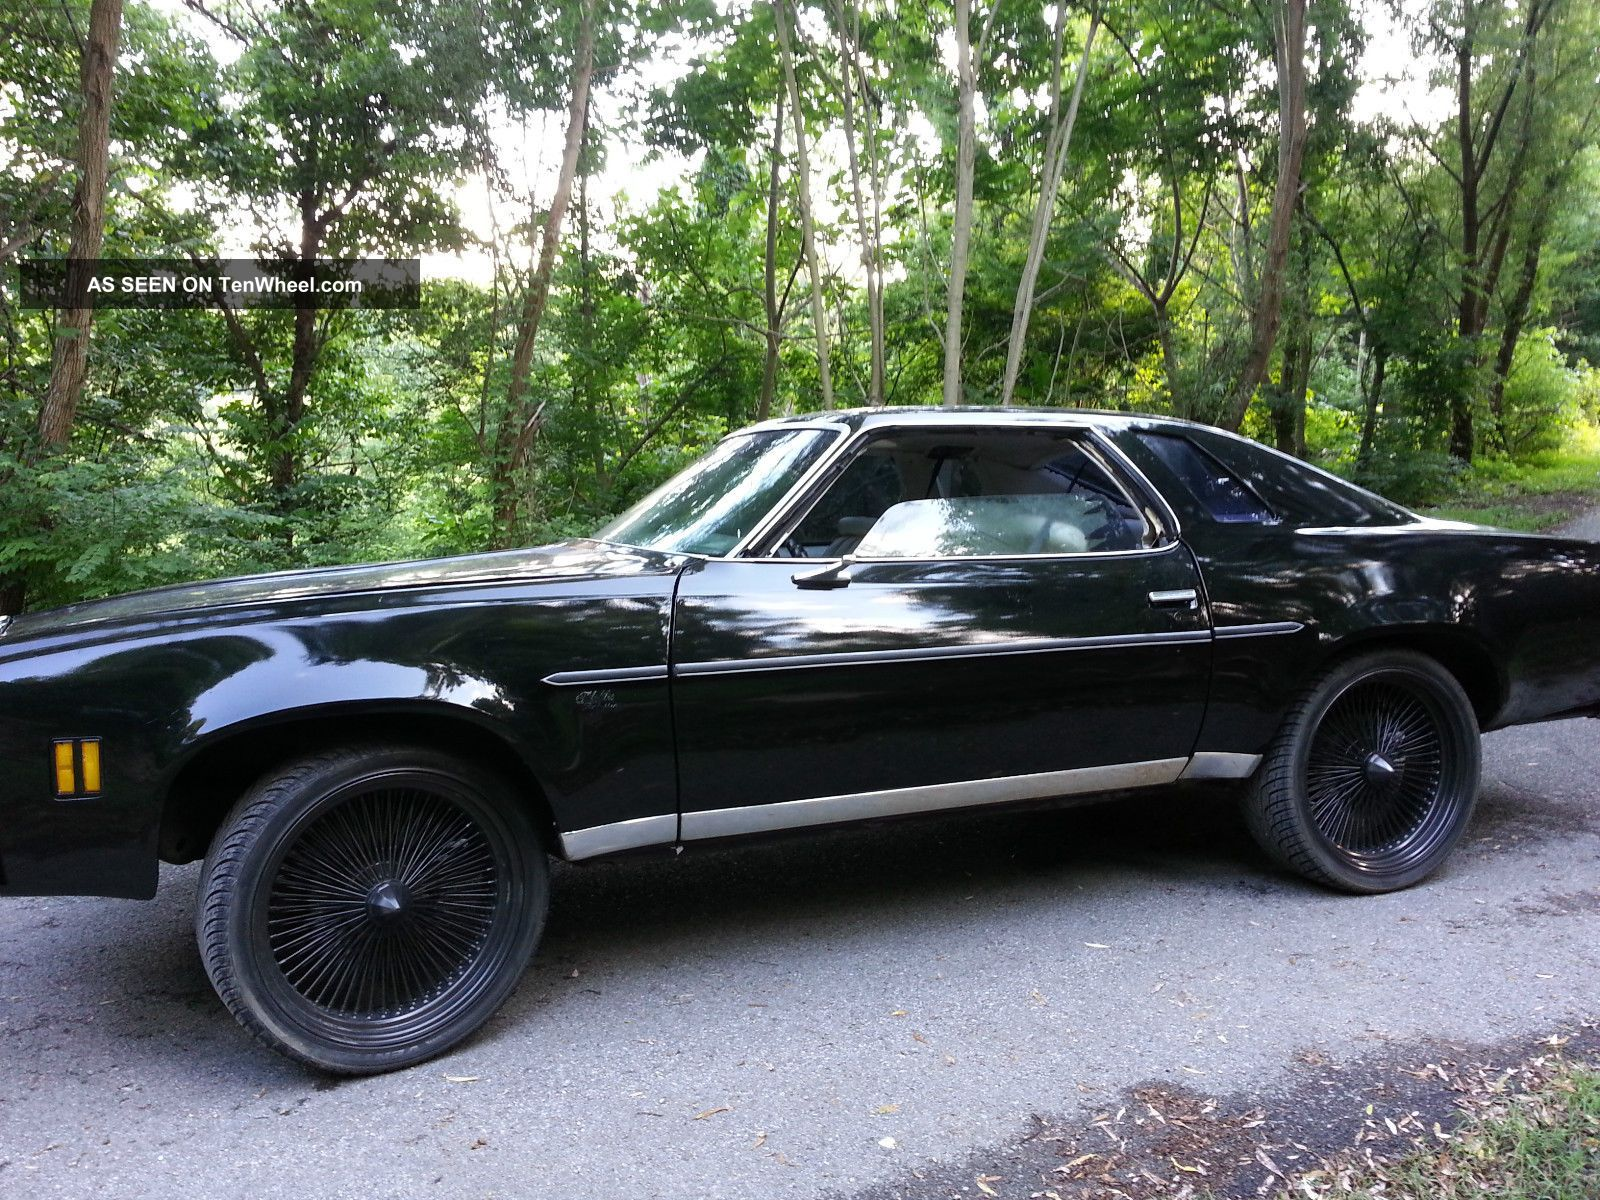 Chevelle Malibu Classic Coupe Wheels Don T Miss This Sharp Car Look Lgw